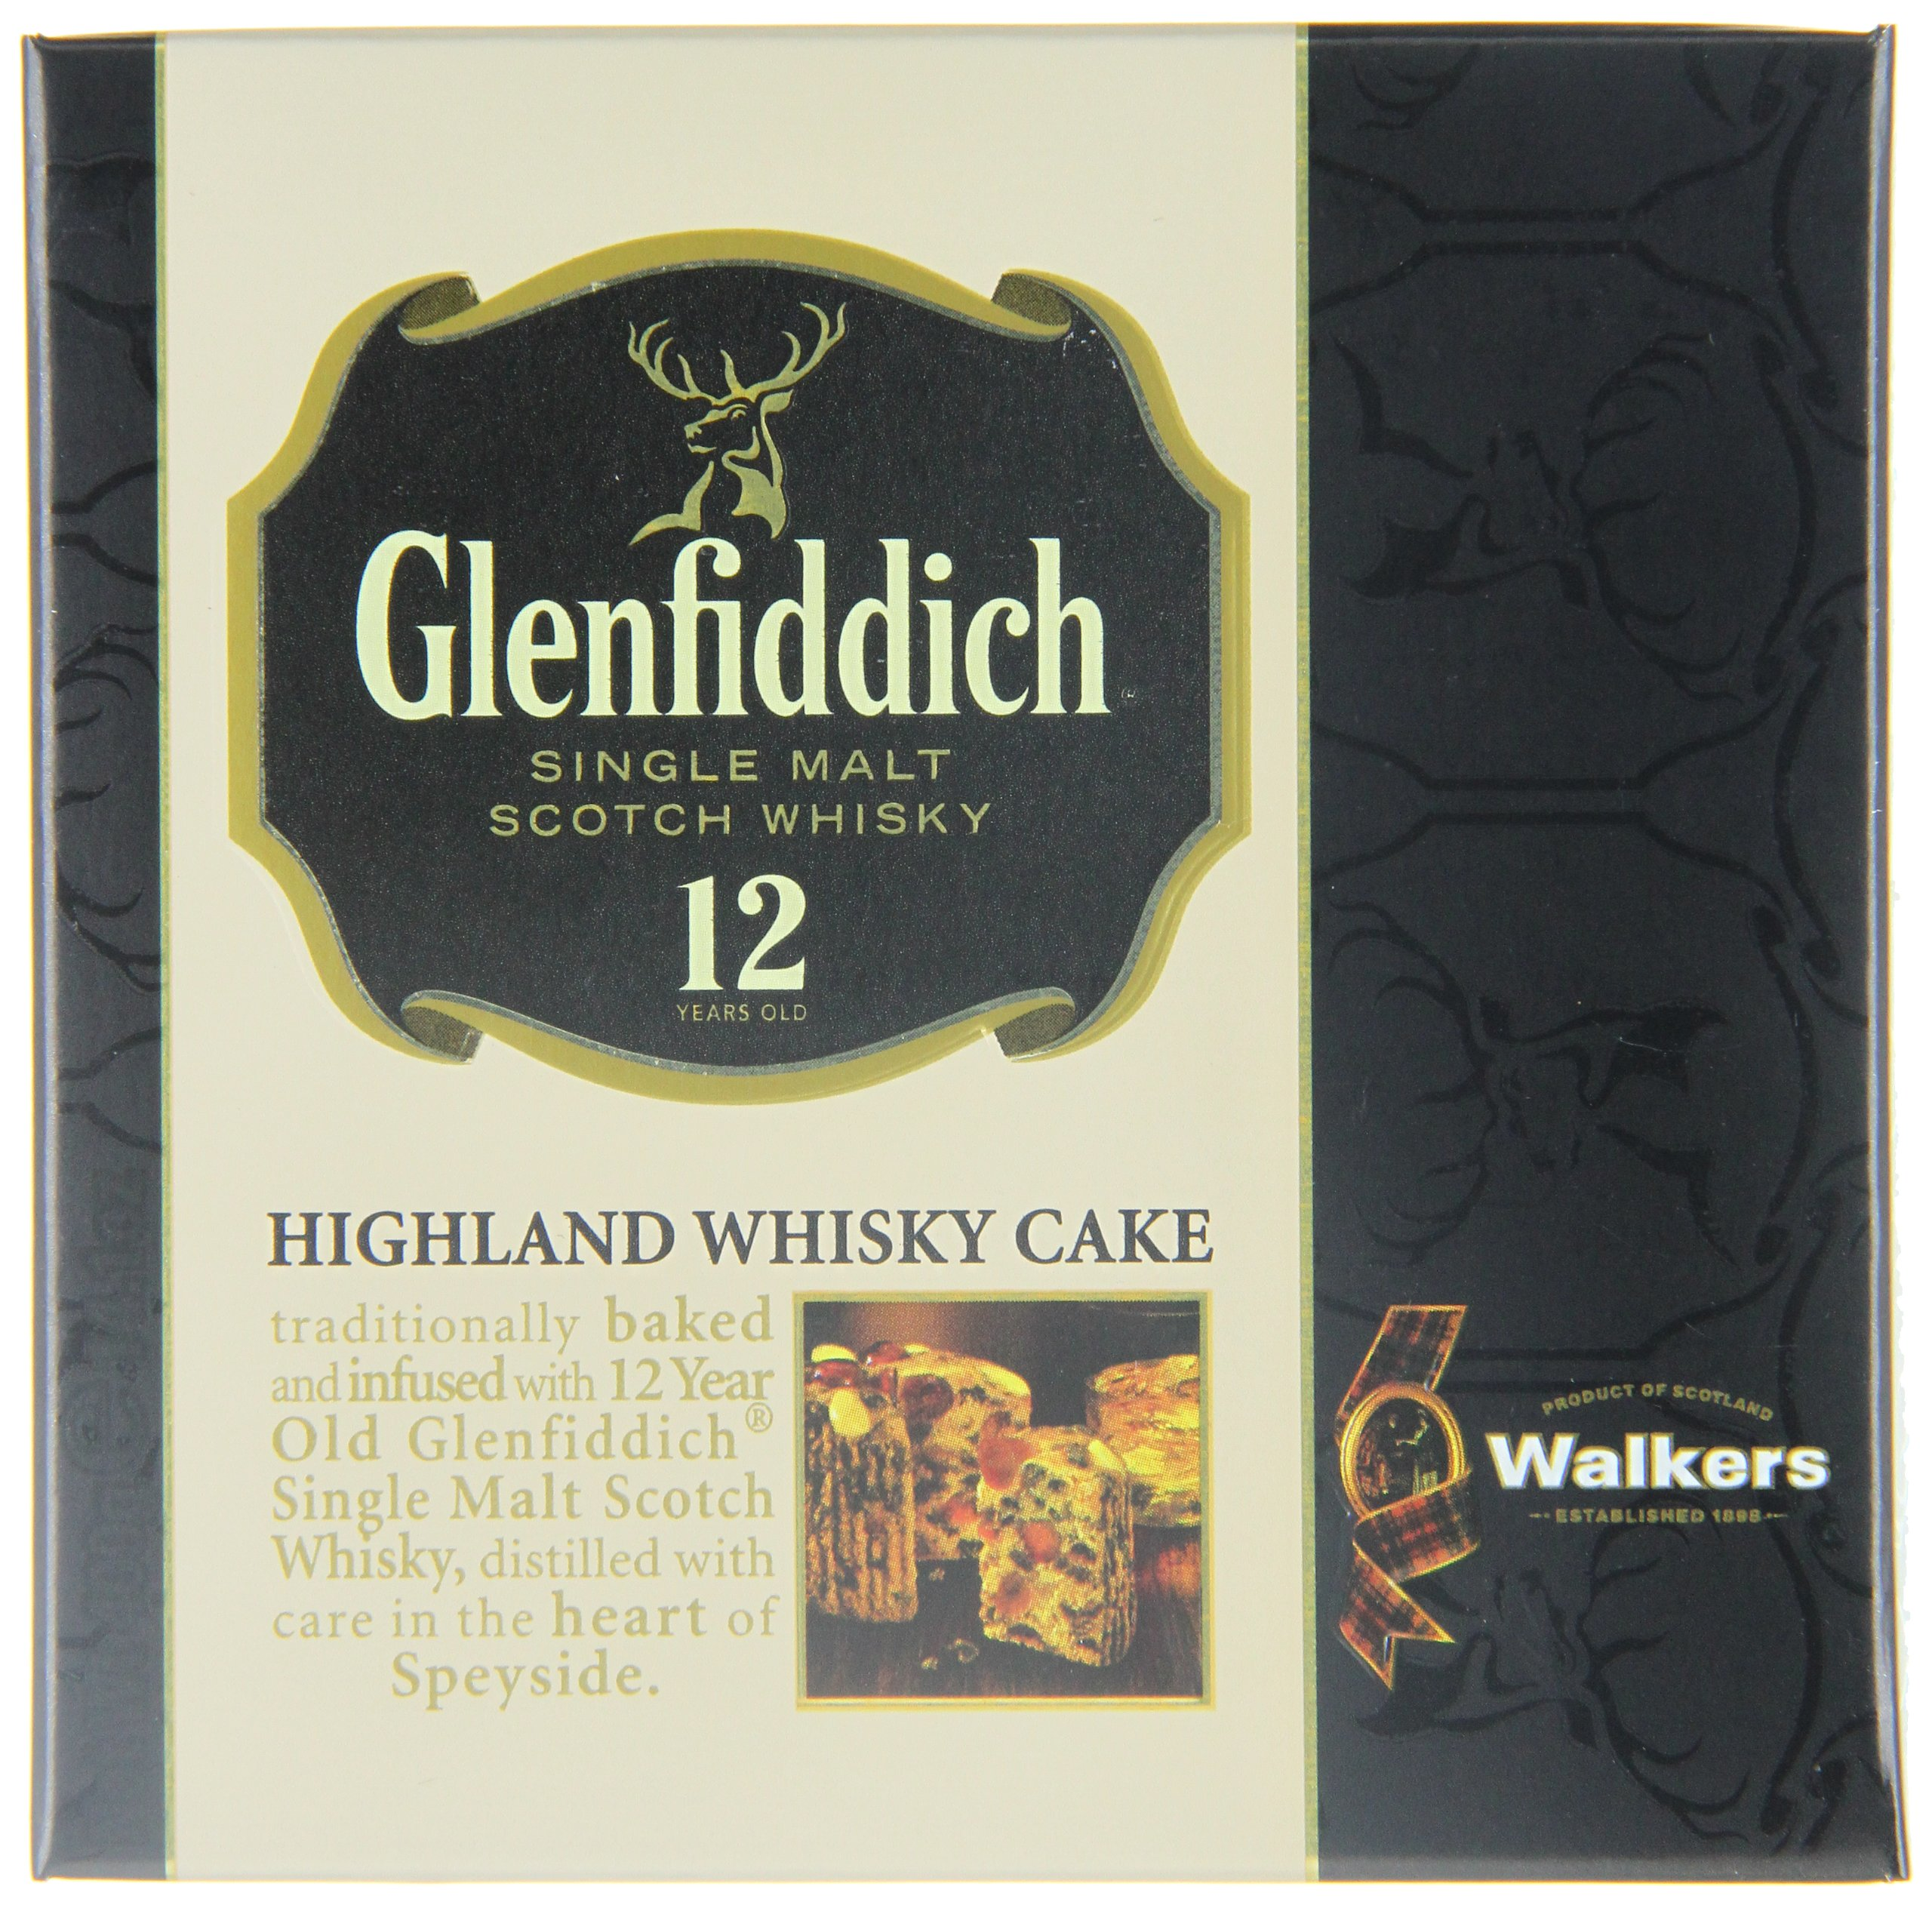 Walkers Shortbread Glenfiddich Highland Whisky Cake, 14.1 Ounce Box Traditional Scottish Fruit Cake with Glenfiddich Malt Whisky, Cherries, Sultanas by Walkers Shortbread (Image #7)